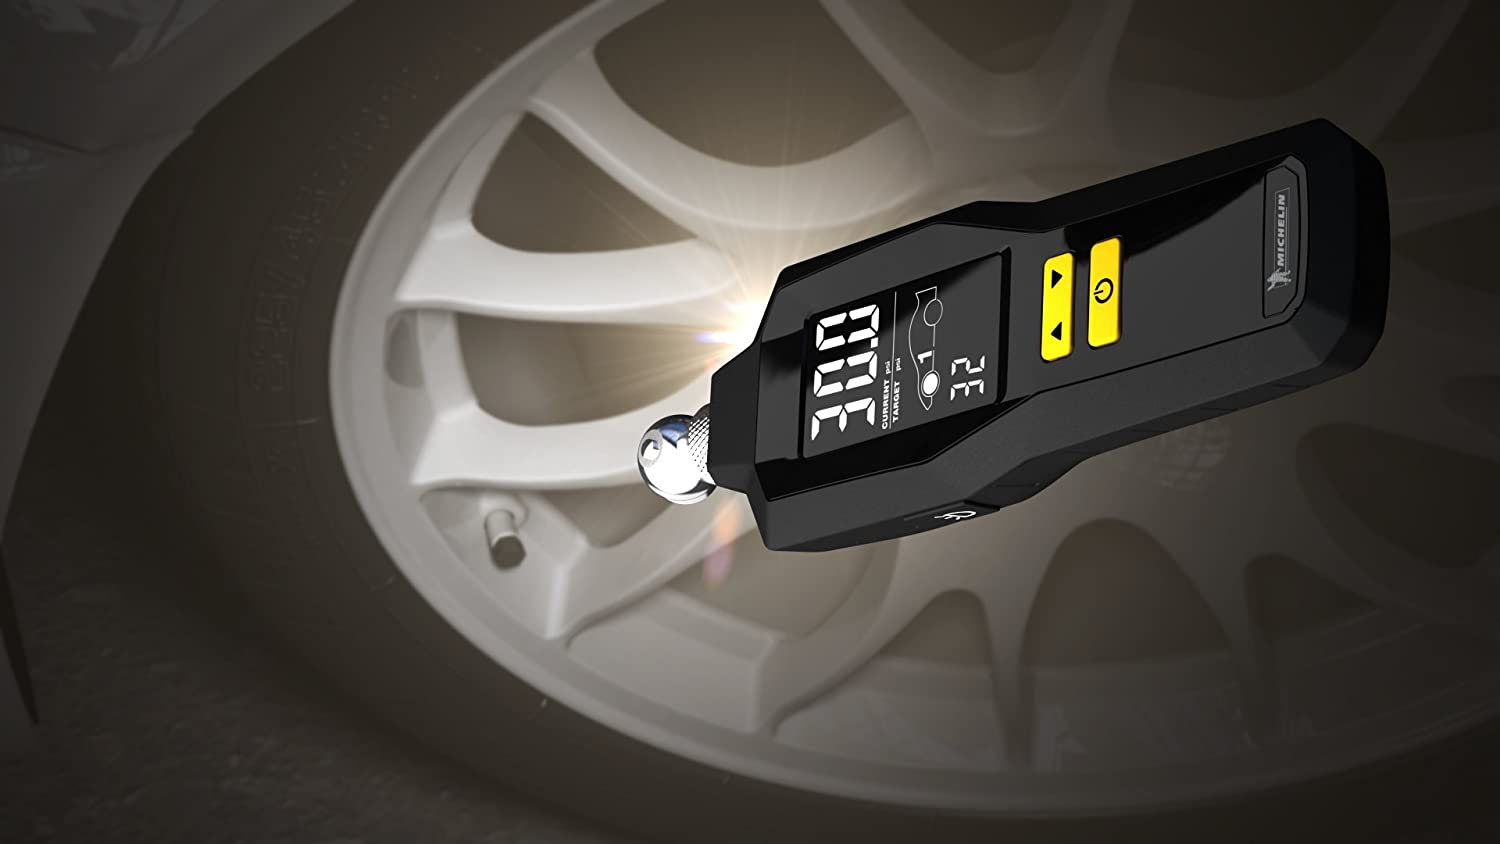 Measurement Limited Michelin 12295 Programmable Dual Car Digital Tire Pressure Gauge with Flashlight and Bleed Valve